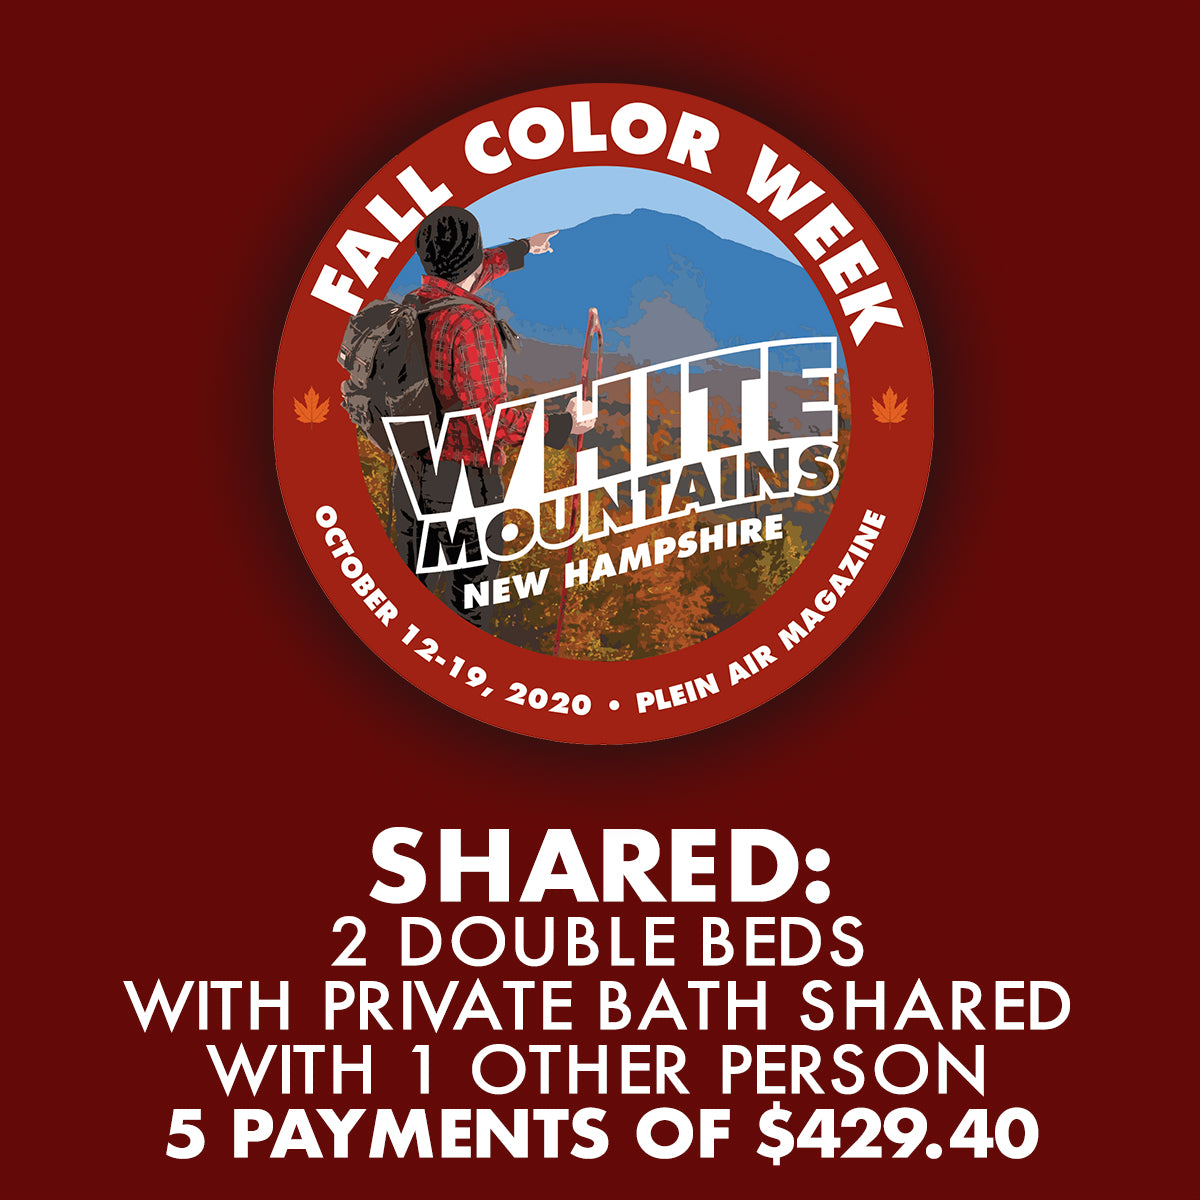 2020 Fall Color Week - Shared: 2 Double Beds with Private Bath Shared with 1 Other Person *** 5 PAYMENT PLAN ***